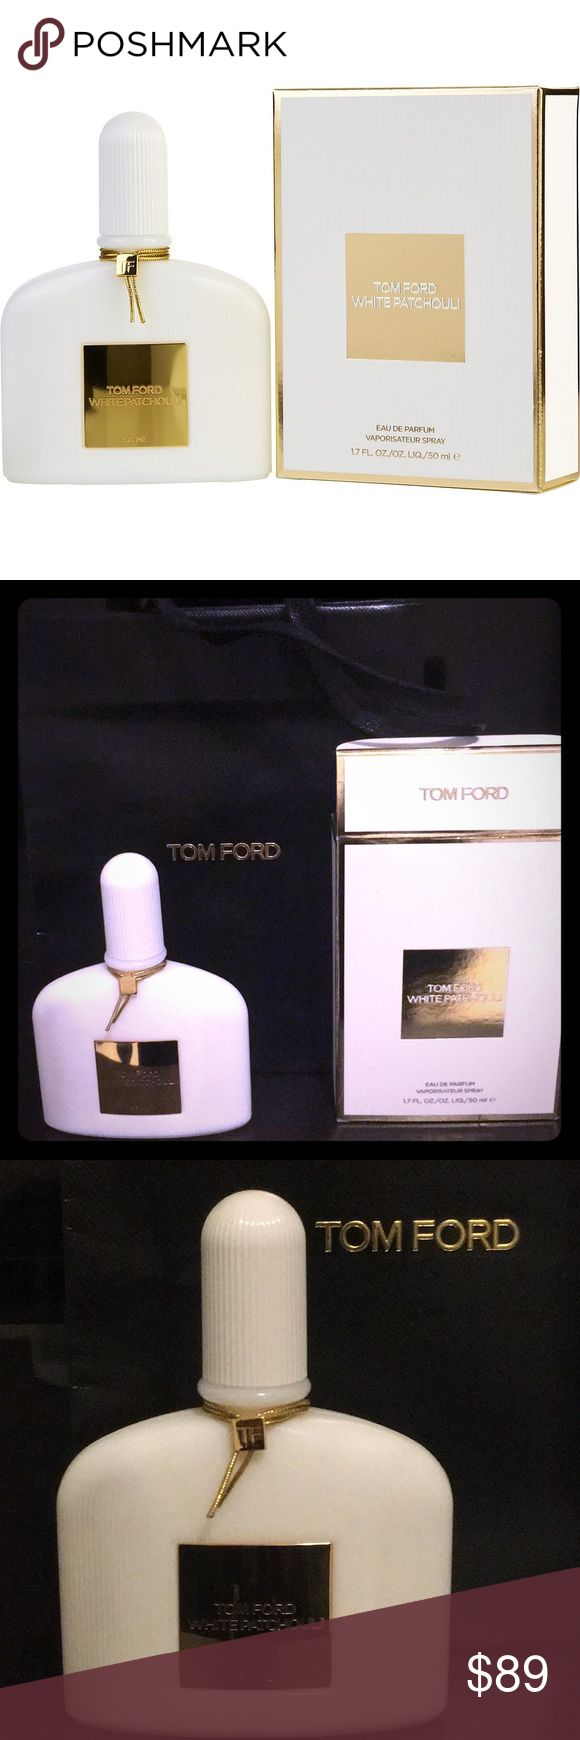 Tom Ford White Patchouli eau de parfum With its sensuous core of patchouli, Tom Ford White Patchouli perfectly captures the myth of a generation.  Surrounded by sleek wood notes, tempered by elegant white flowers, this modern fragrance with retro-classic influences is a sophisticated interpretation of bohemian chic.  Notes: bergamot, white peony, rose absolute, night blooming jasmine, patchouli Orpur, incense. Brand New, unused (plastic wrap was just removed) In Box with Tom Ford bag 1.7 oz…